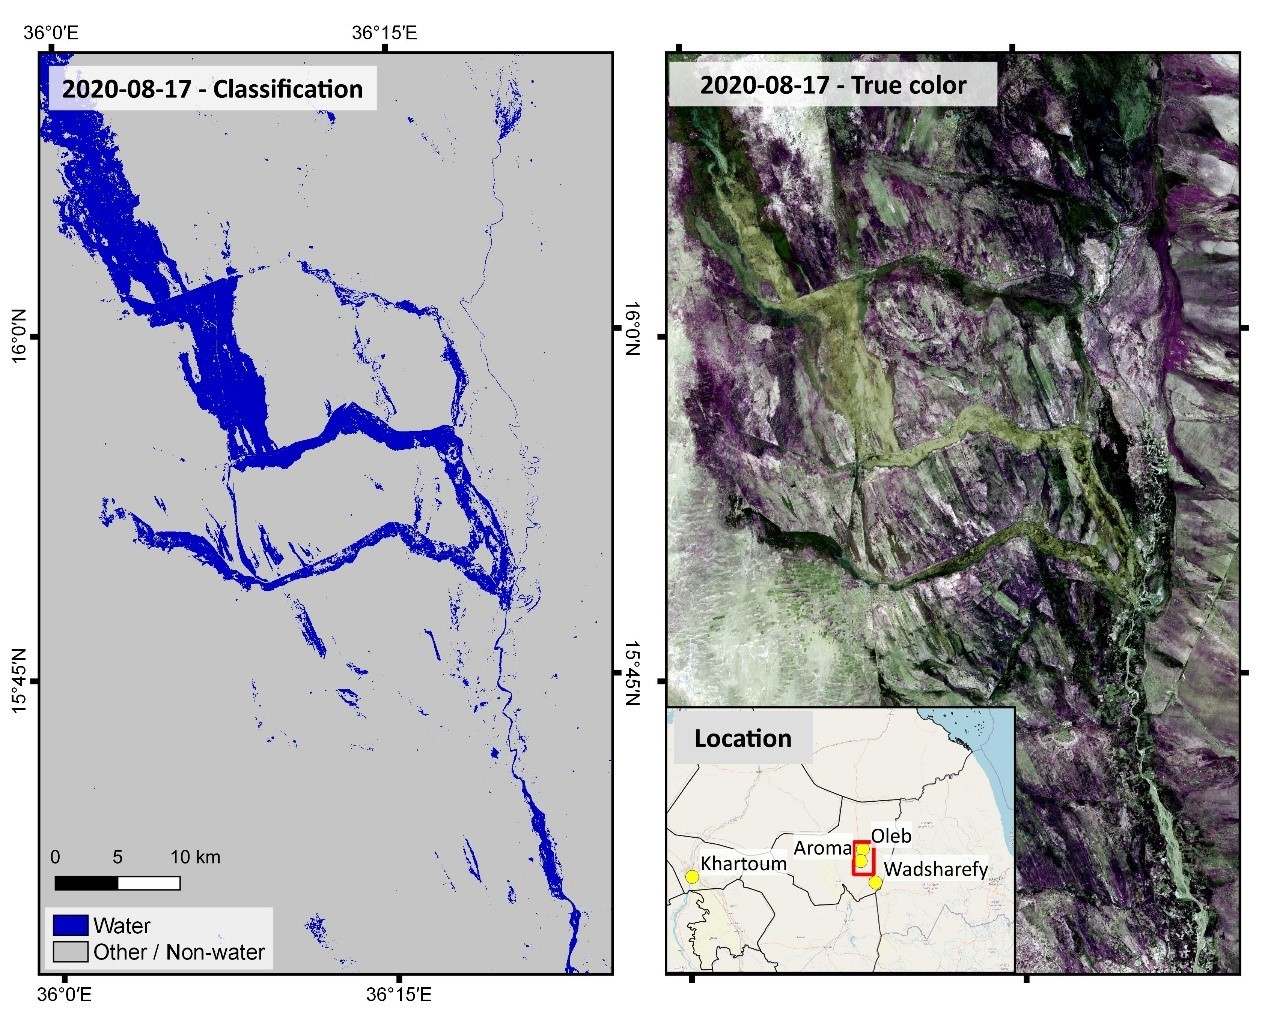 Figure 2: Example for classification result using the NDWI based on Sentinel 2 provided by ESA via the International Charter. Scene taken on August 17th, 2020.